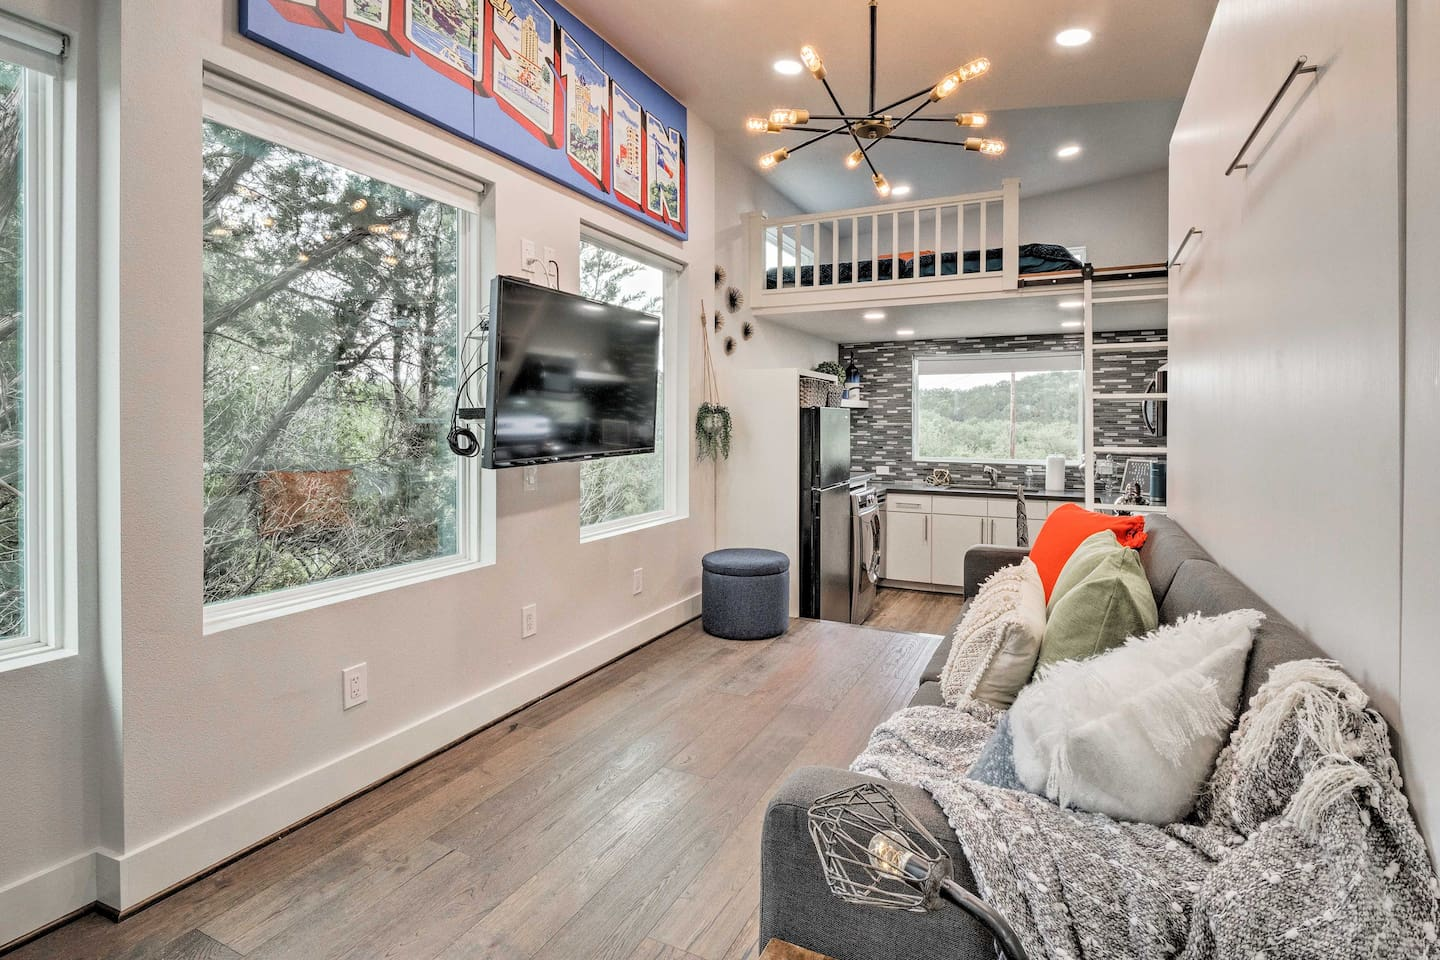 Make your next trip to Austin one to remember when you stay at this studio!